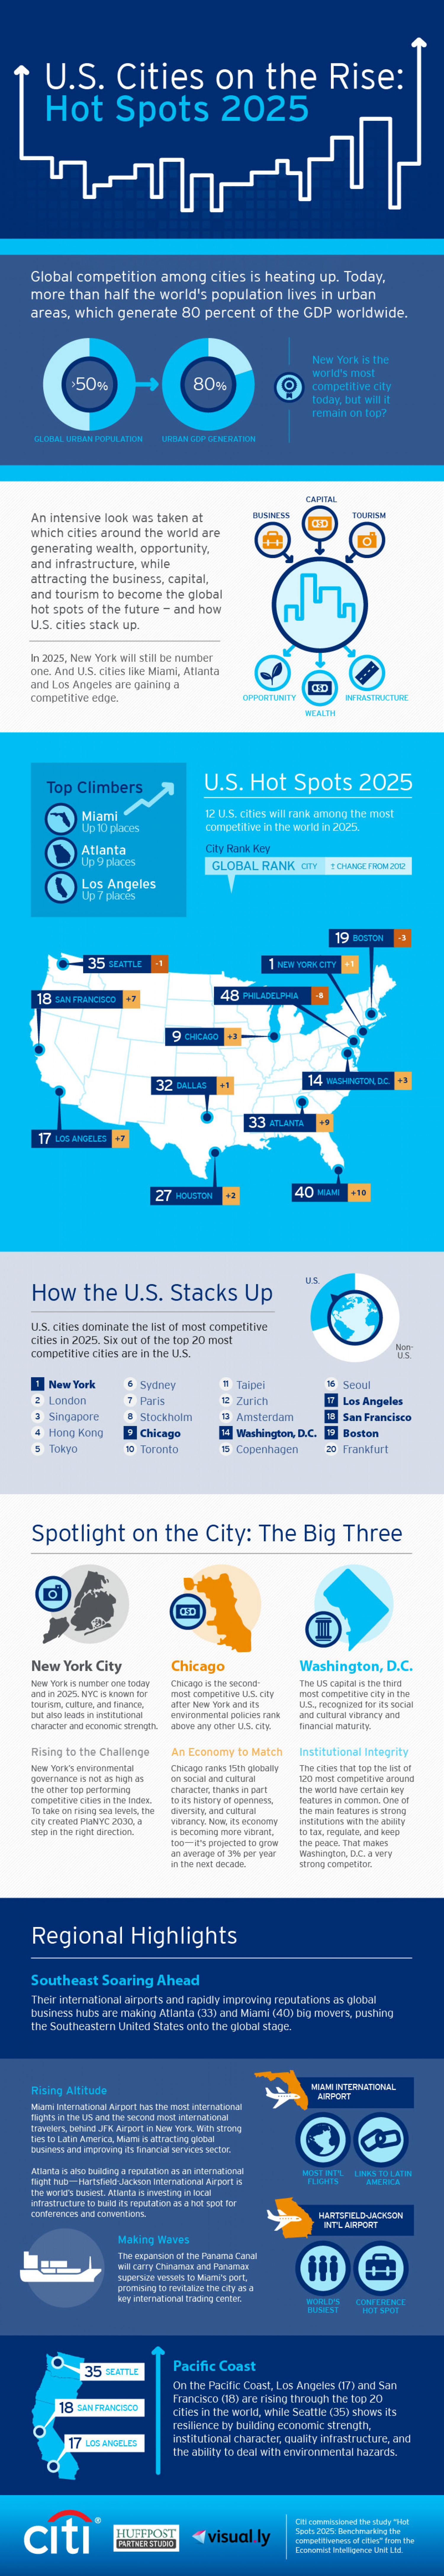 U.S. Cities on the Rise: Hot Spots 2025 Infographic